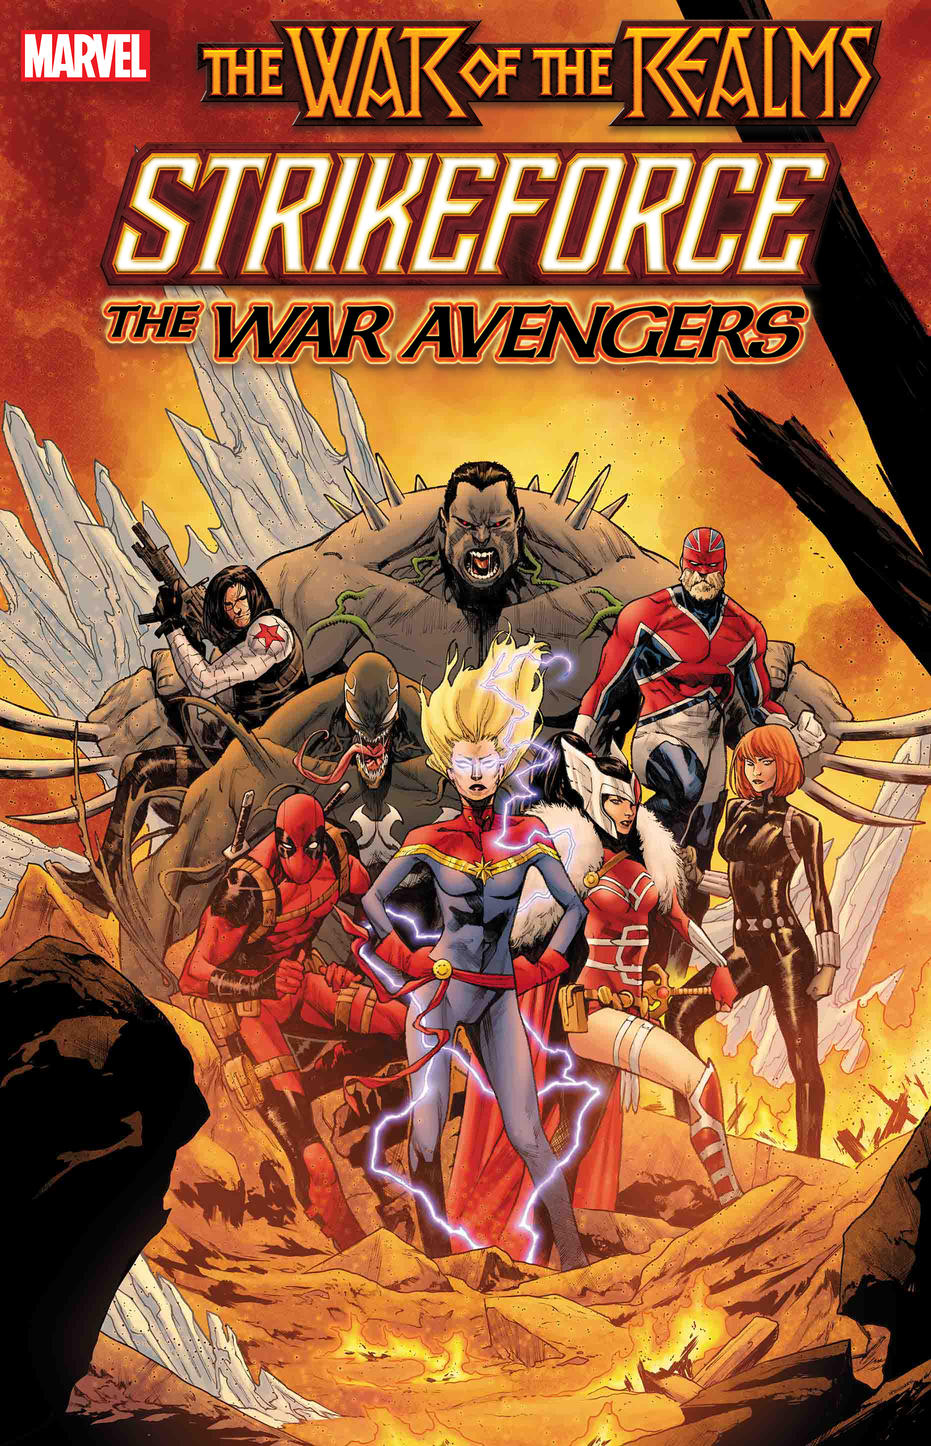 Guerra dos Reinos - War of the Realms - Strikeforce - The War Avengers - Blog Farofeiros